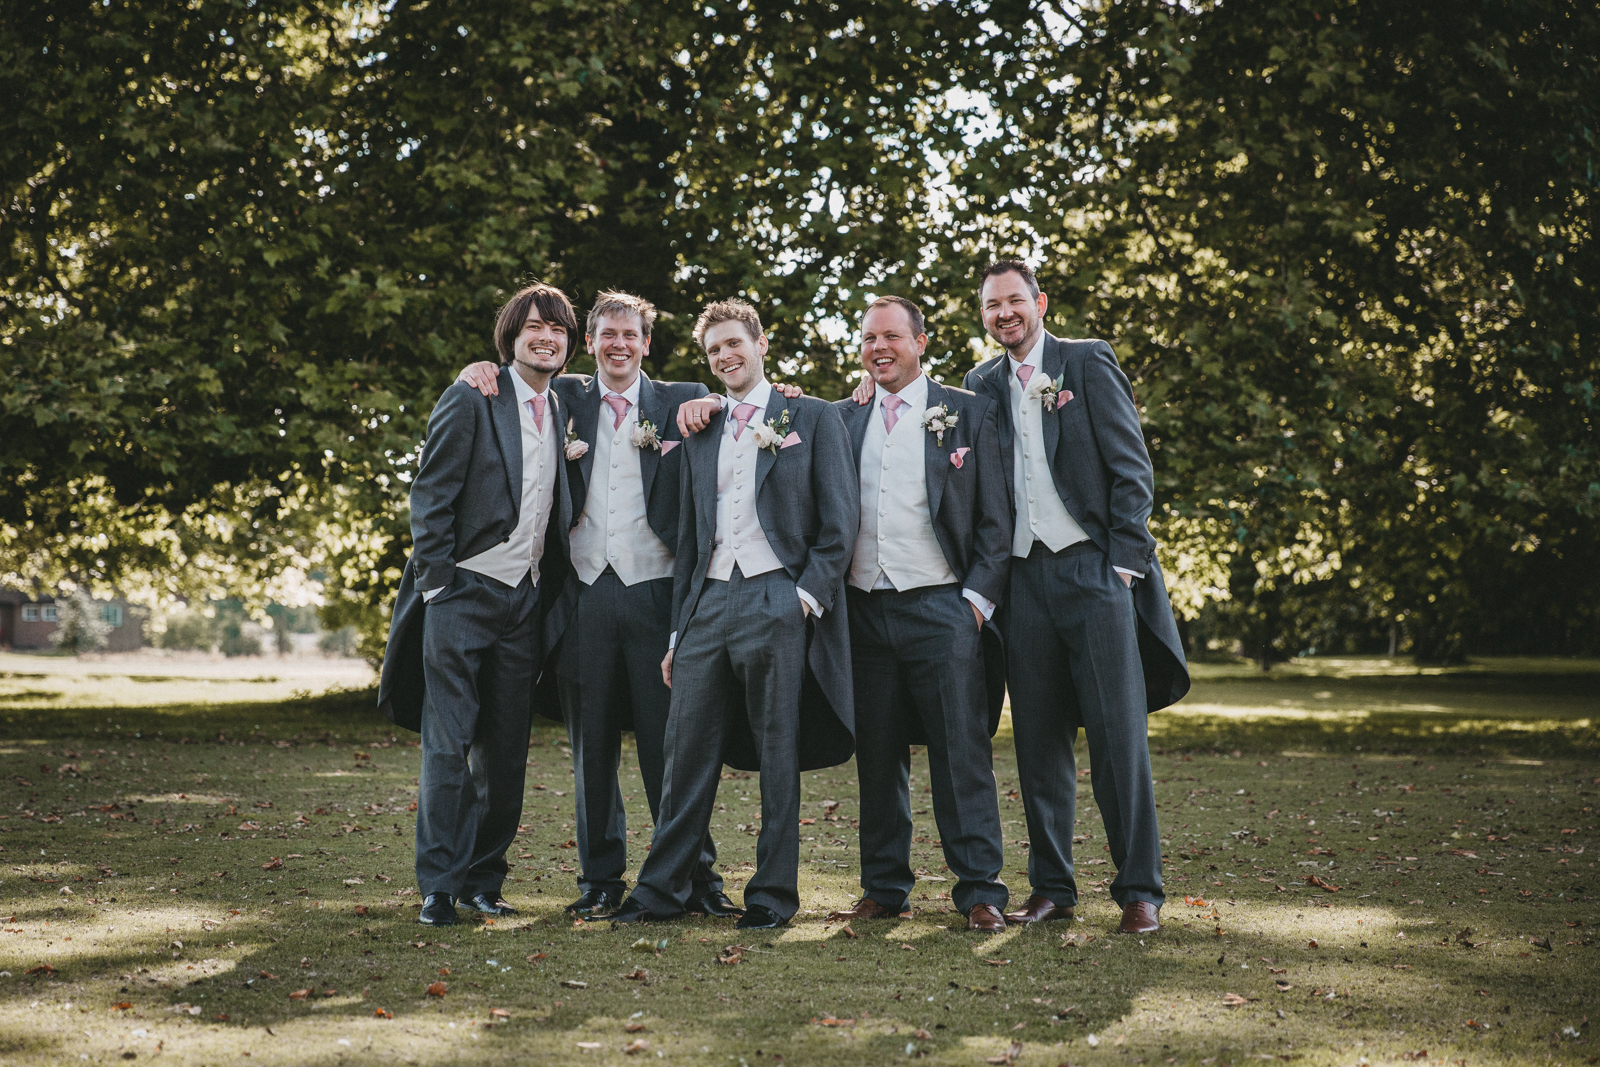 Chris Bradshaw Wedding Photography - Simon & Amanda Wedding Photos-86